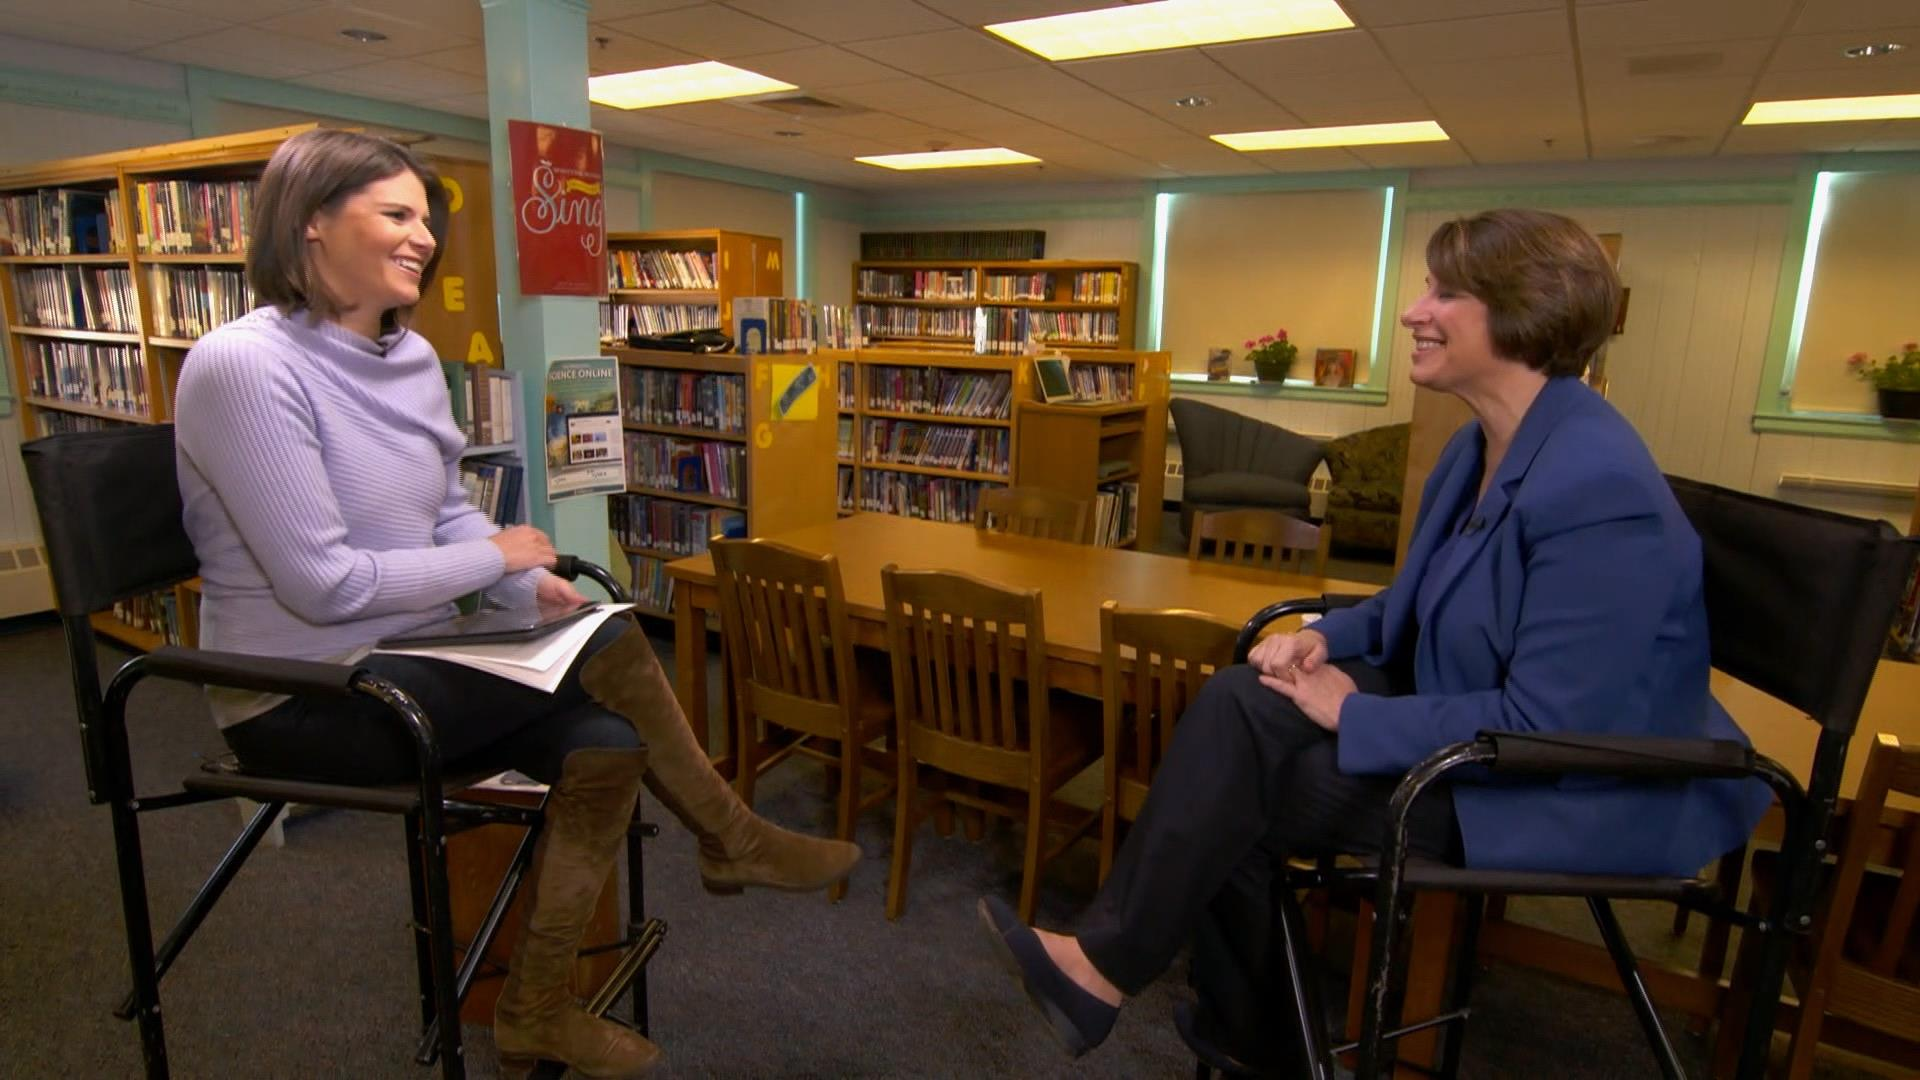 Climate change, immigration, college tuition overshadow Mueller investigation as Amy Klobuchar campaigns in NH